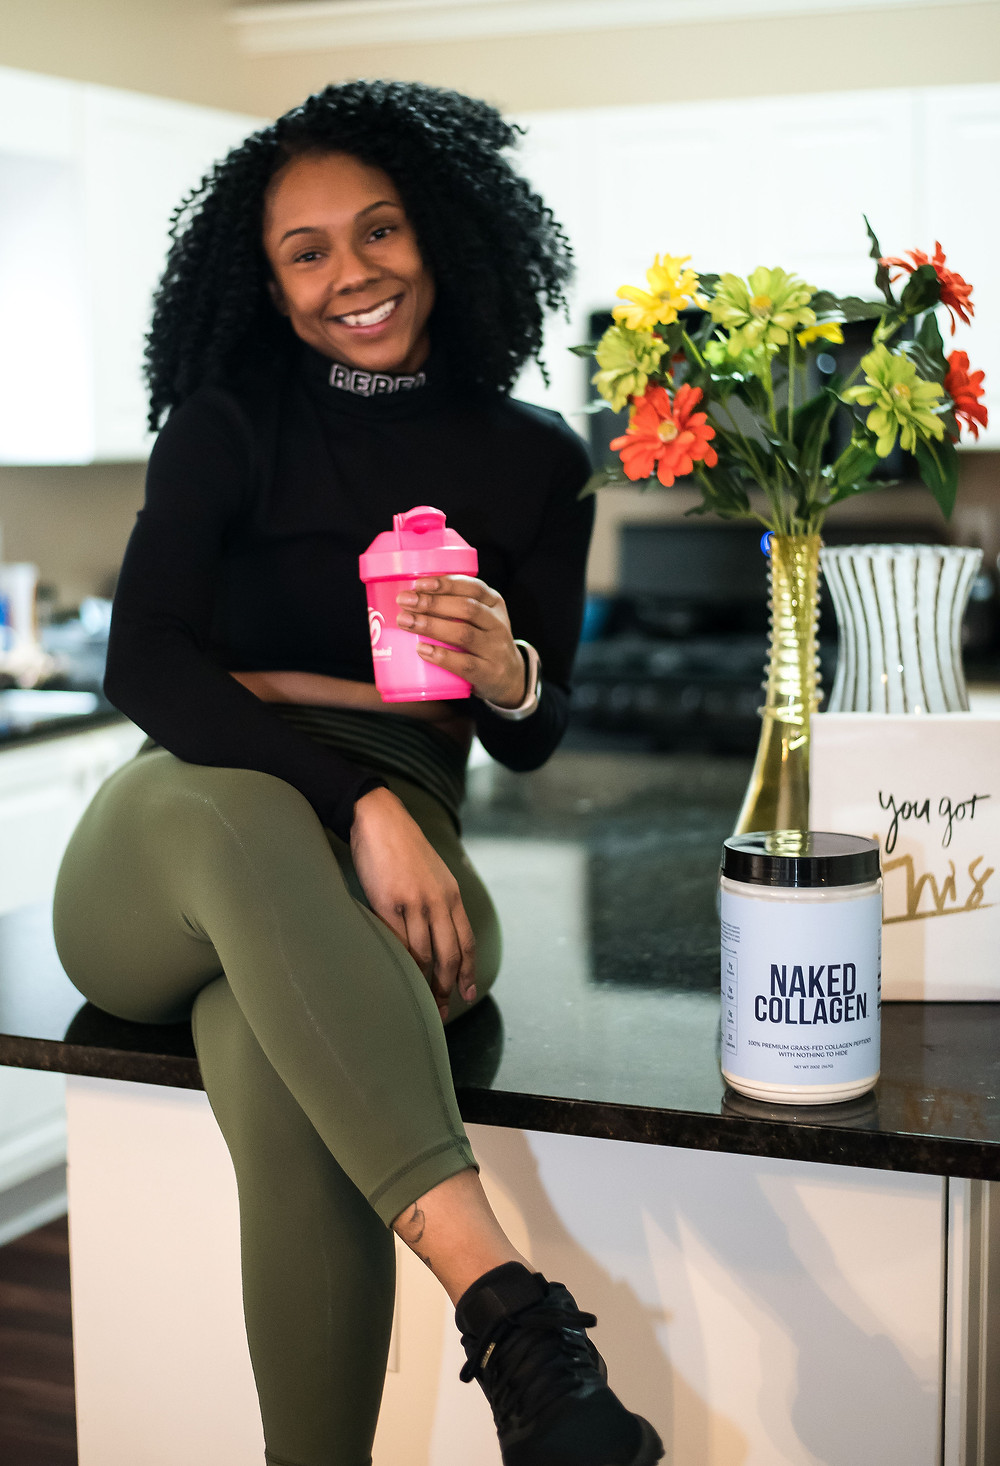 Girl sitting on counter with legs crossed and holding a pink cup while smiling.